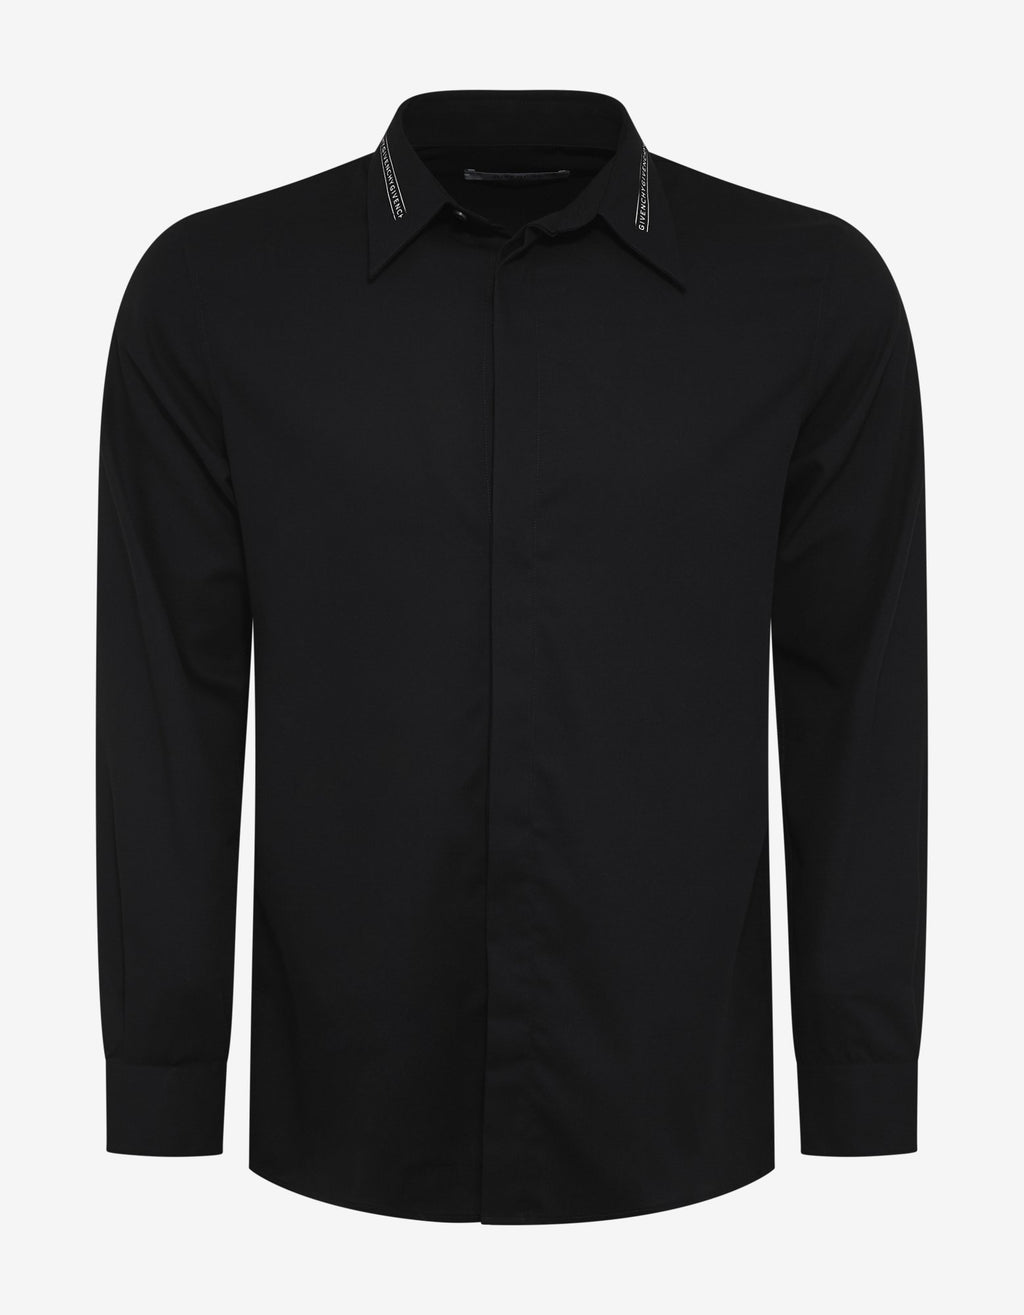 Black Logo Collar Shirt -